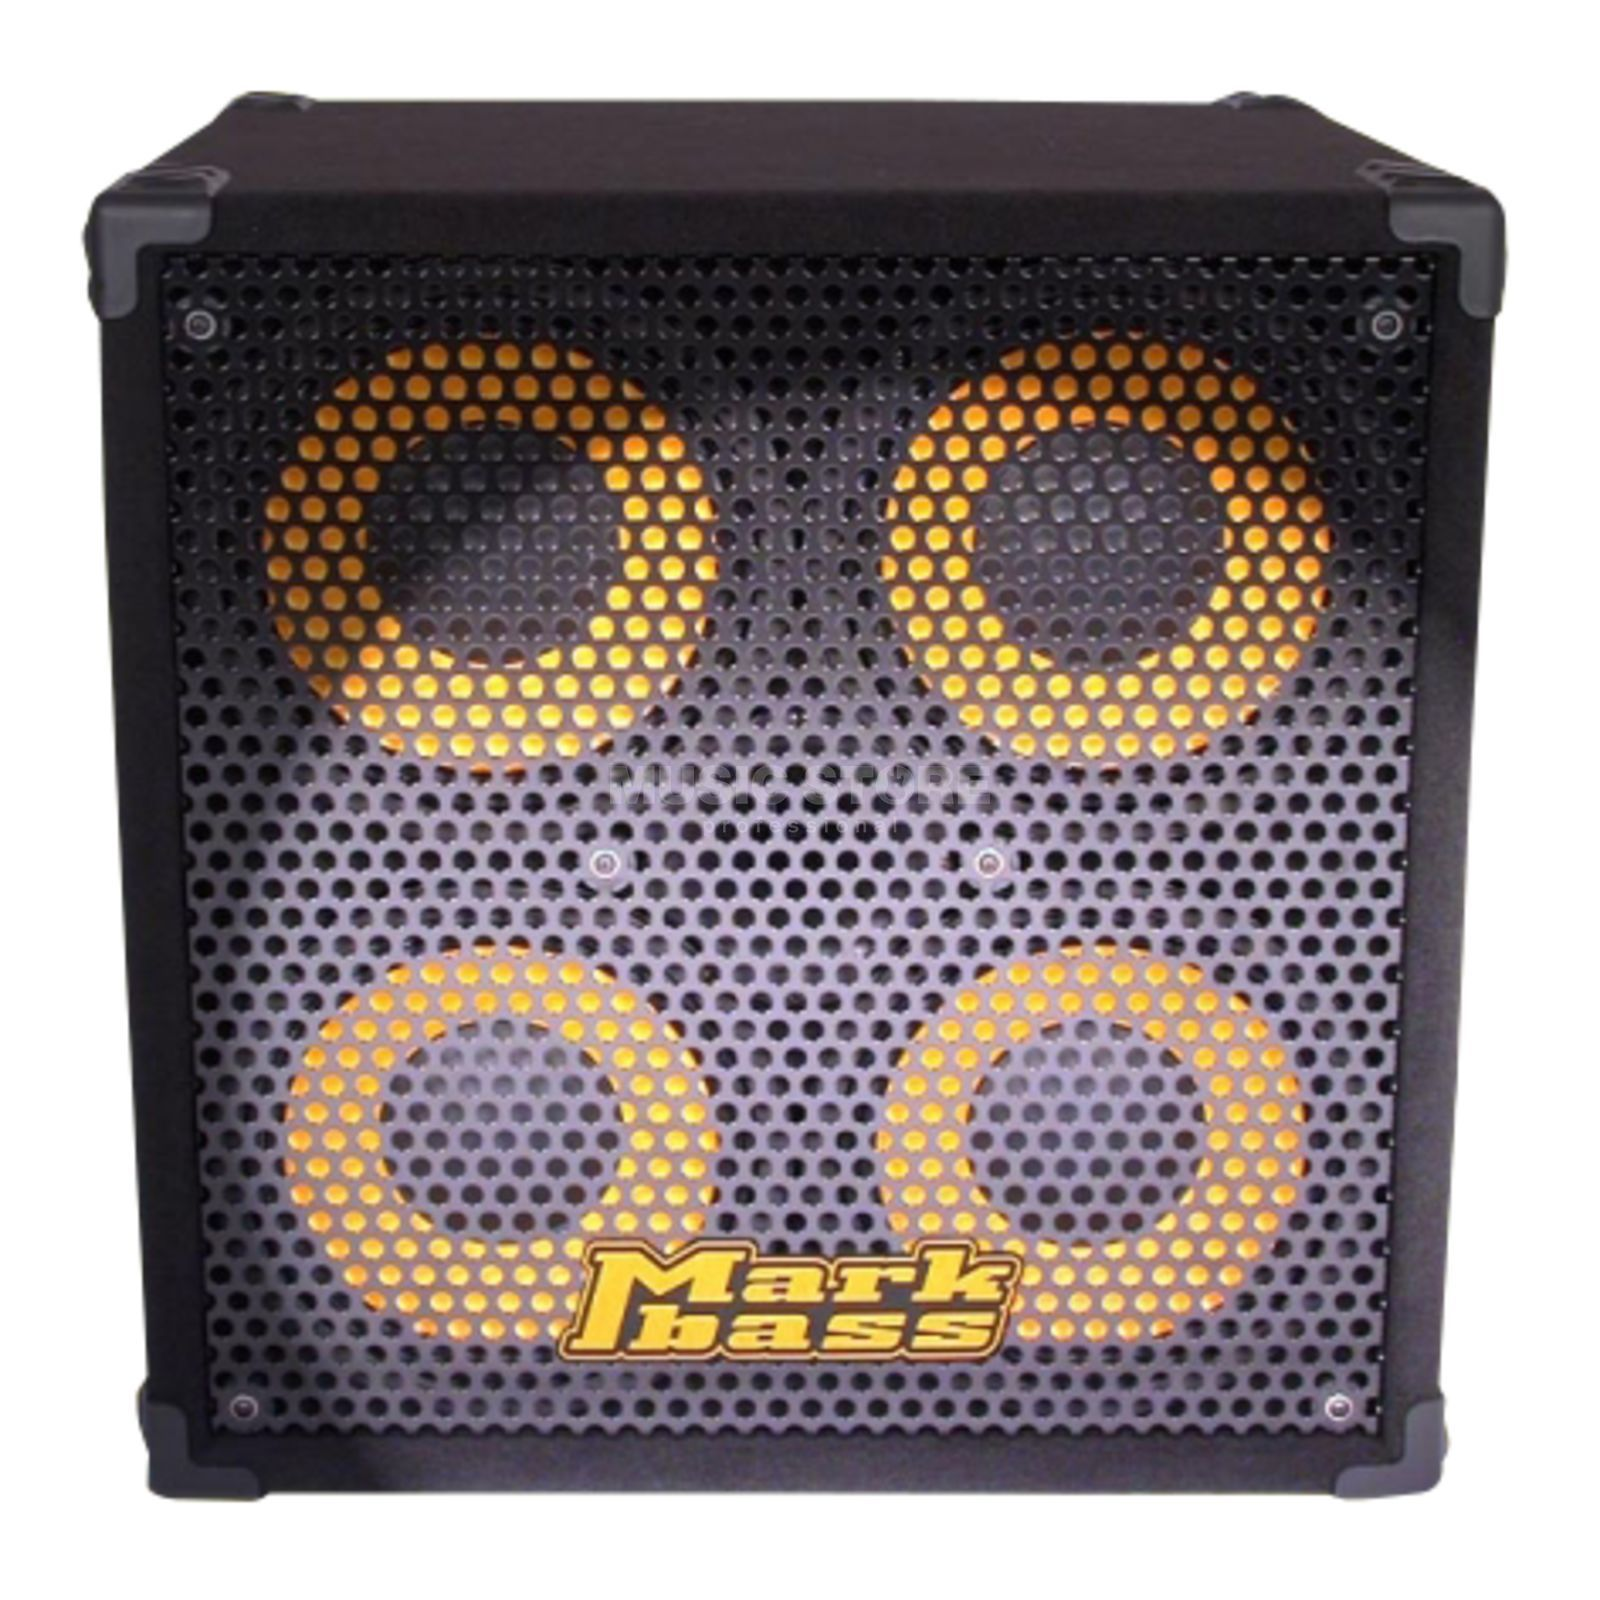 Mark Bass standaard 104 HR 4 Ohm Cabinet  Productafbeelding